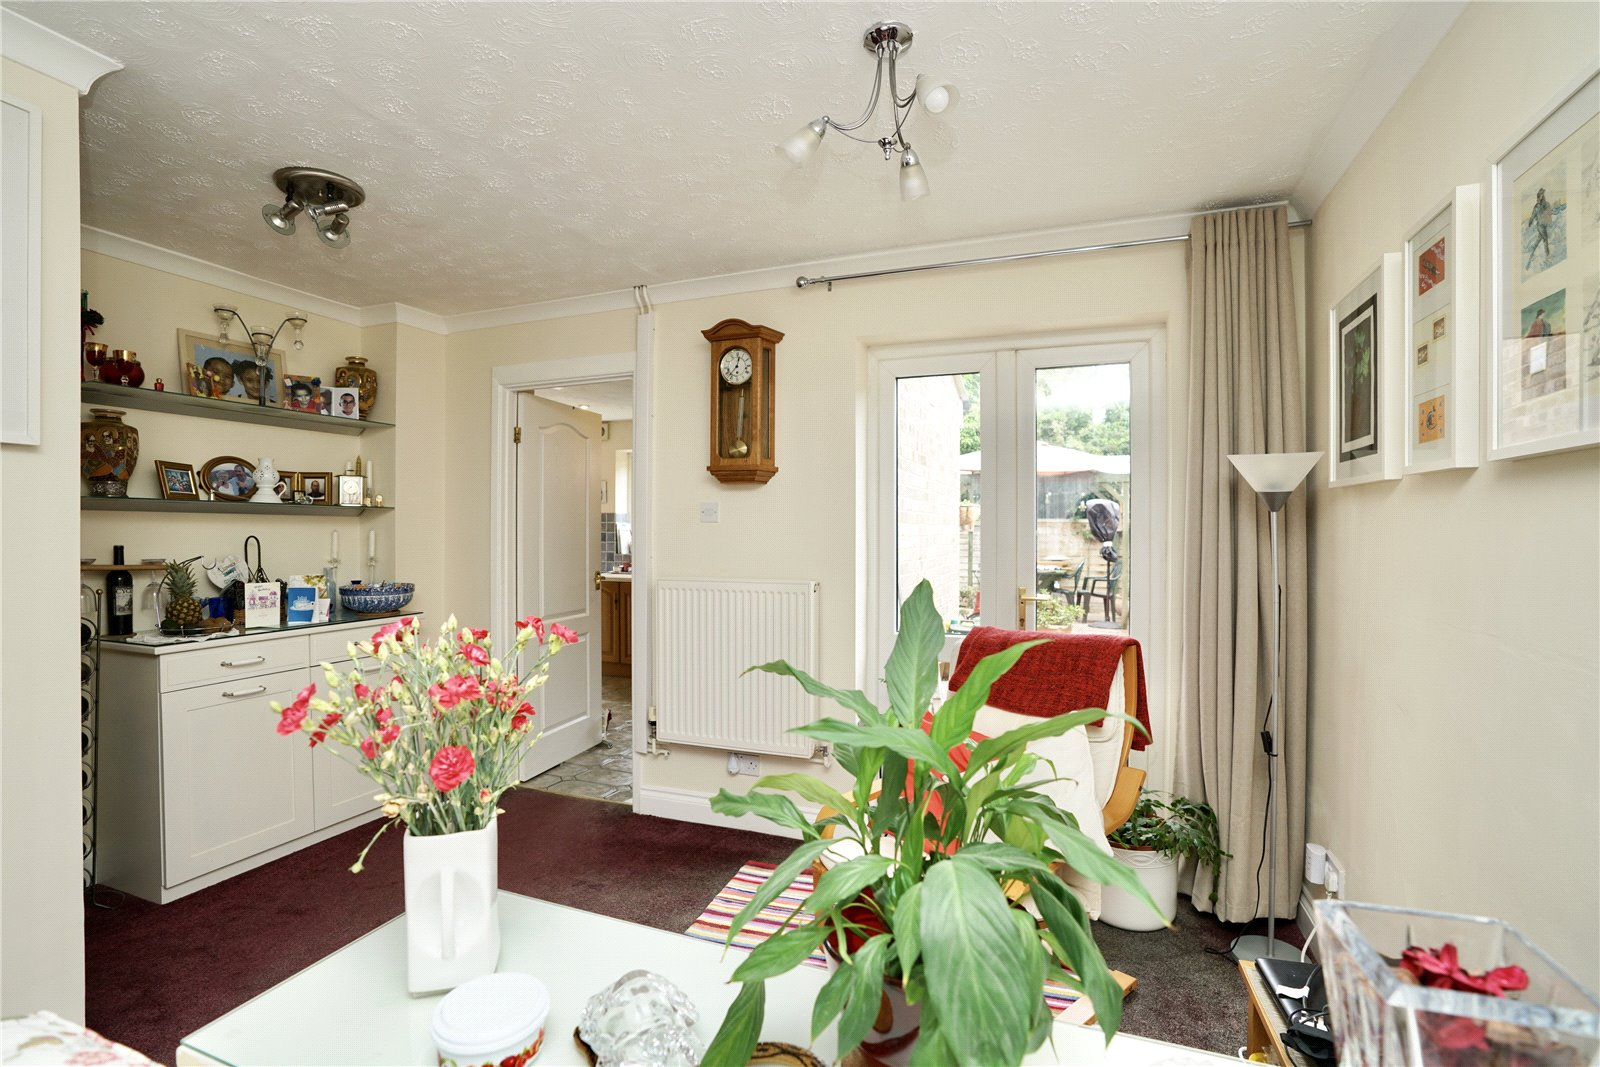 3 bed house for sale in Cunningham Way, Eaton Socon  - Property Image 12